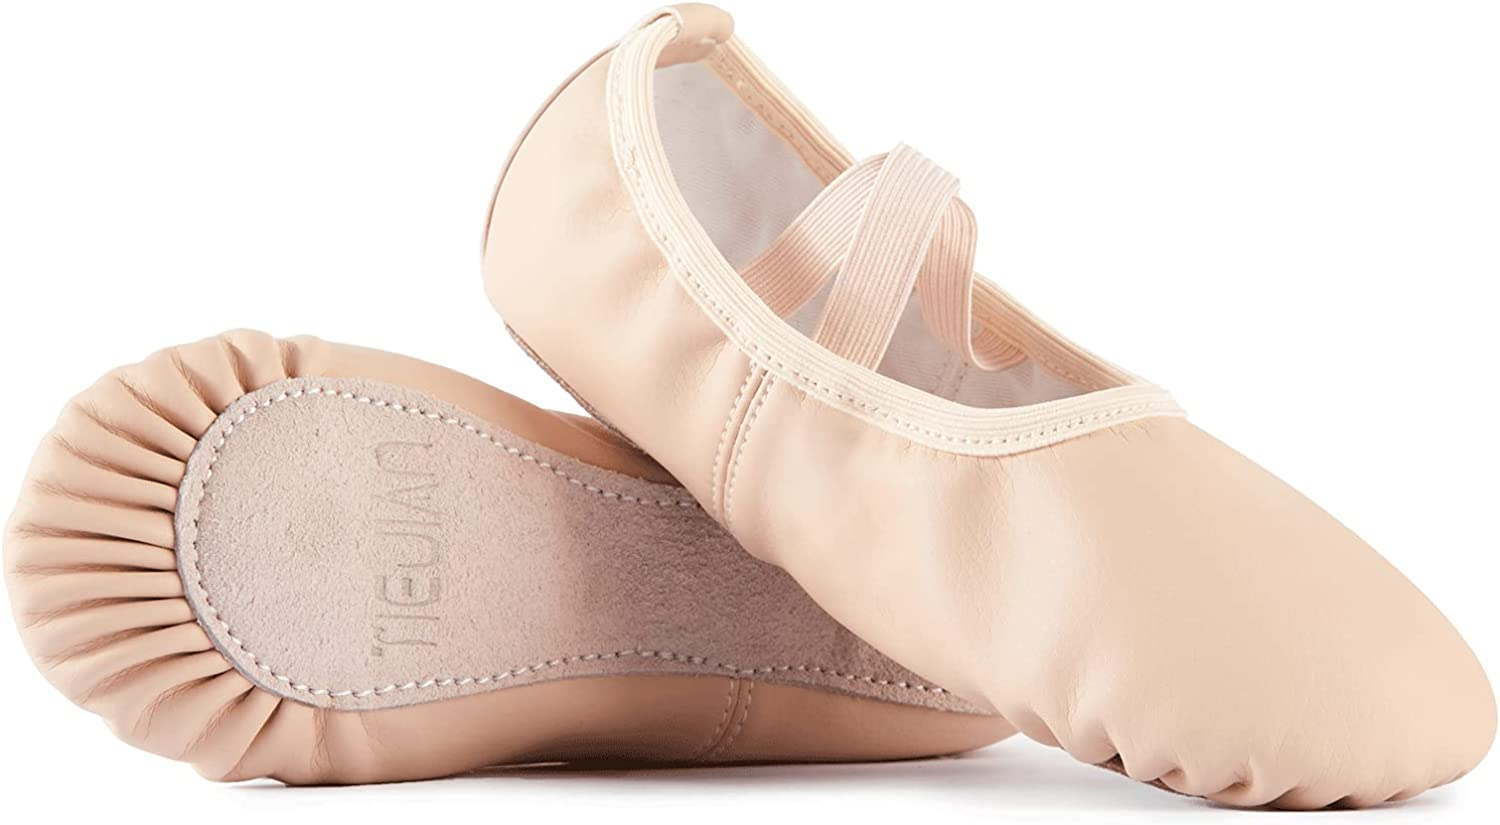 VICVIK Leather Ballet Shoes Spring new work for - Fla Girls Slippers It is very popular Yoga